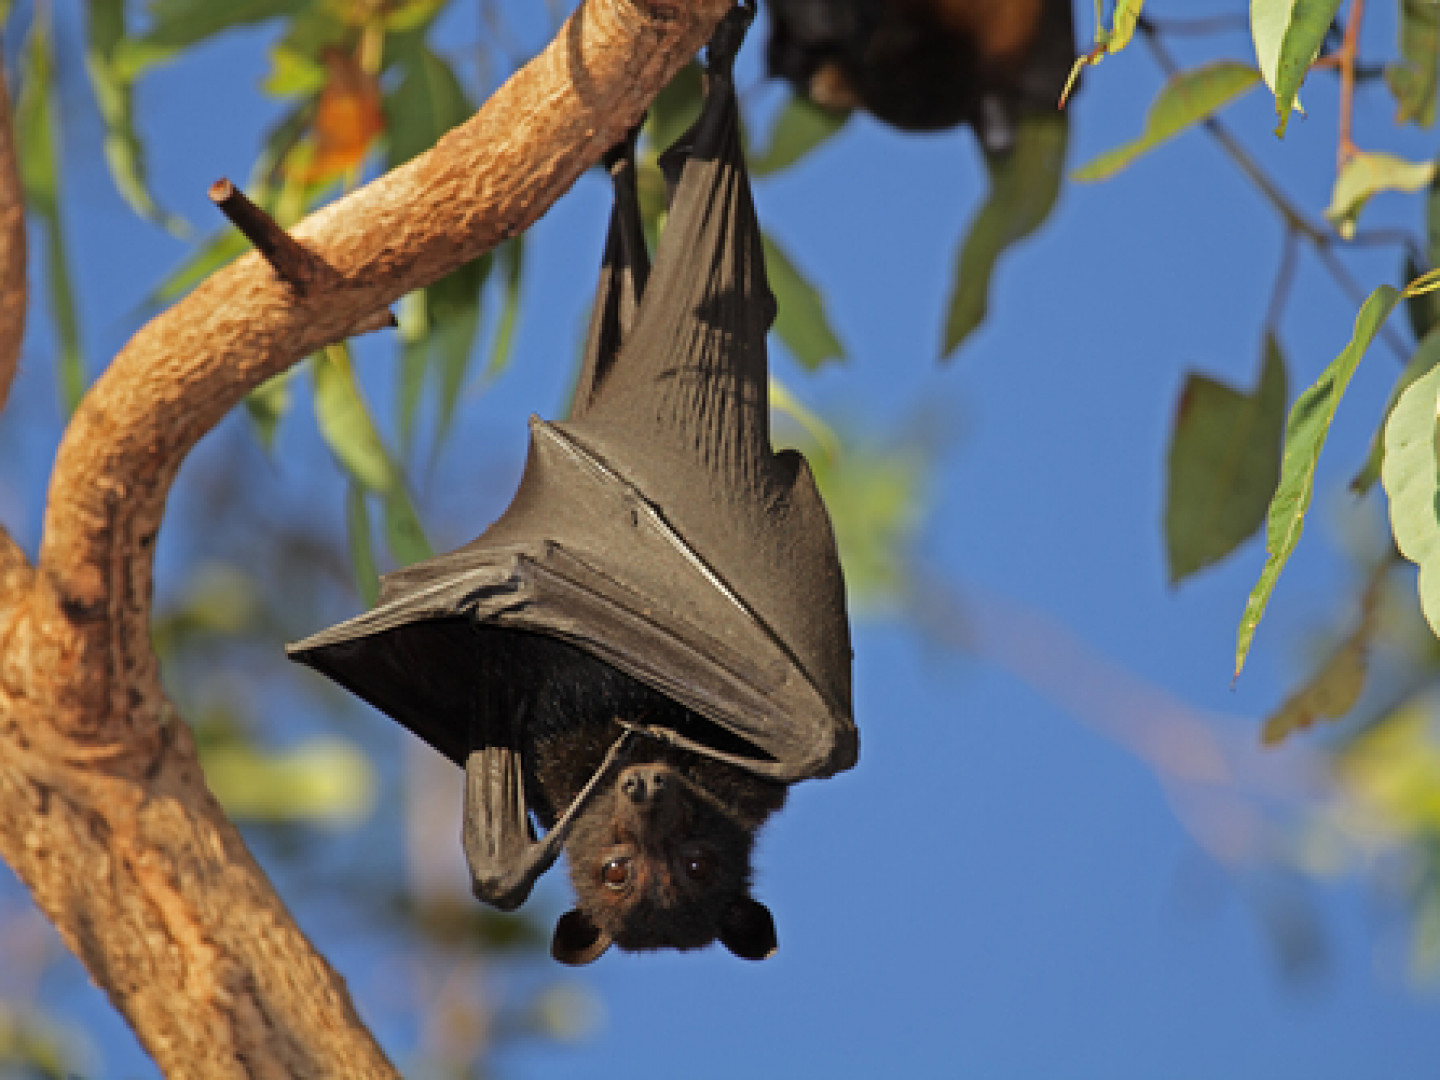 Are Winged Intruders Driving You Batty?